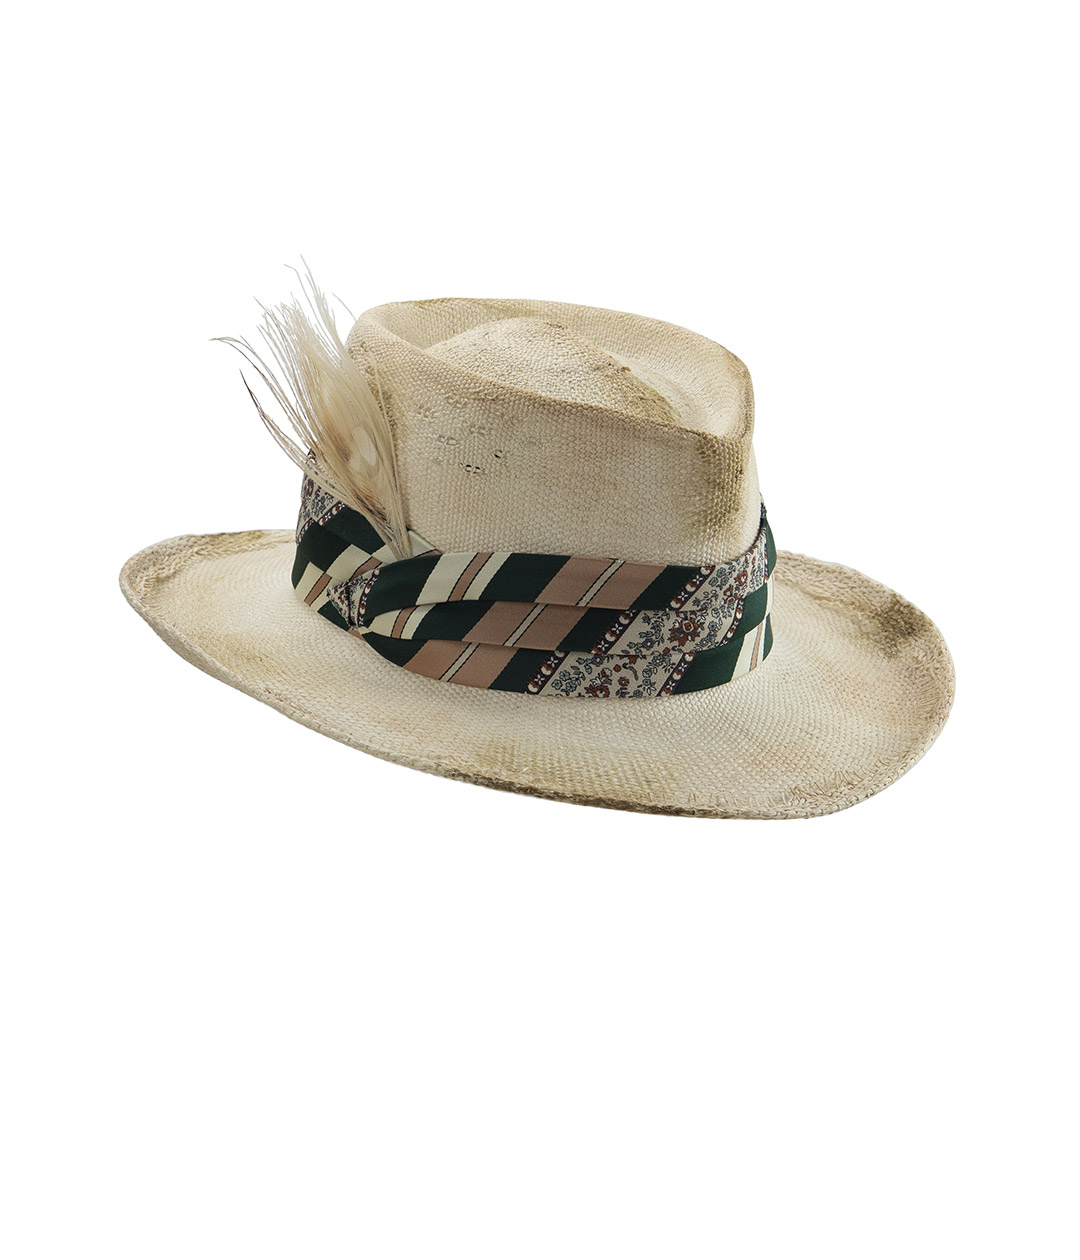 Distressed white straw hat with silk band and bleached peacock feather. Wide-brim Western-style hat on white background.